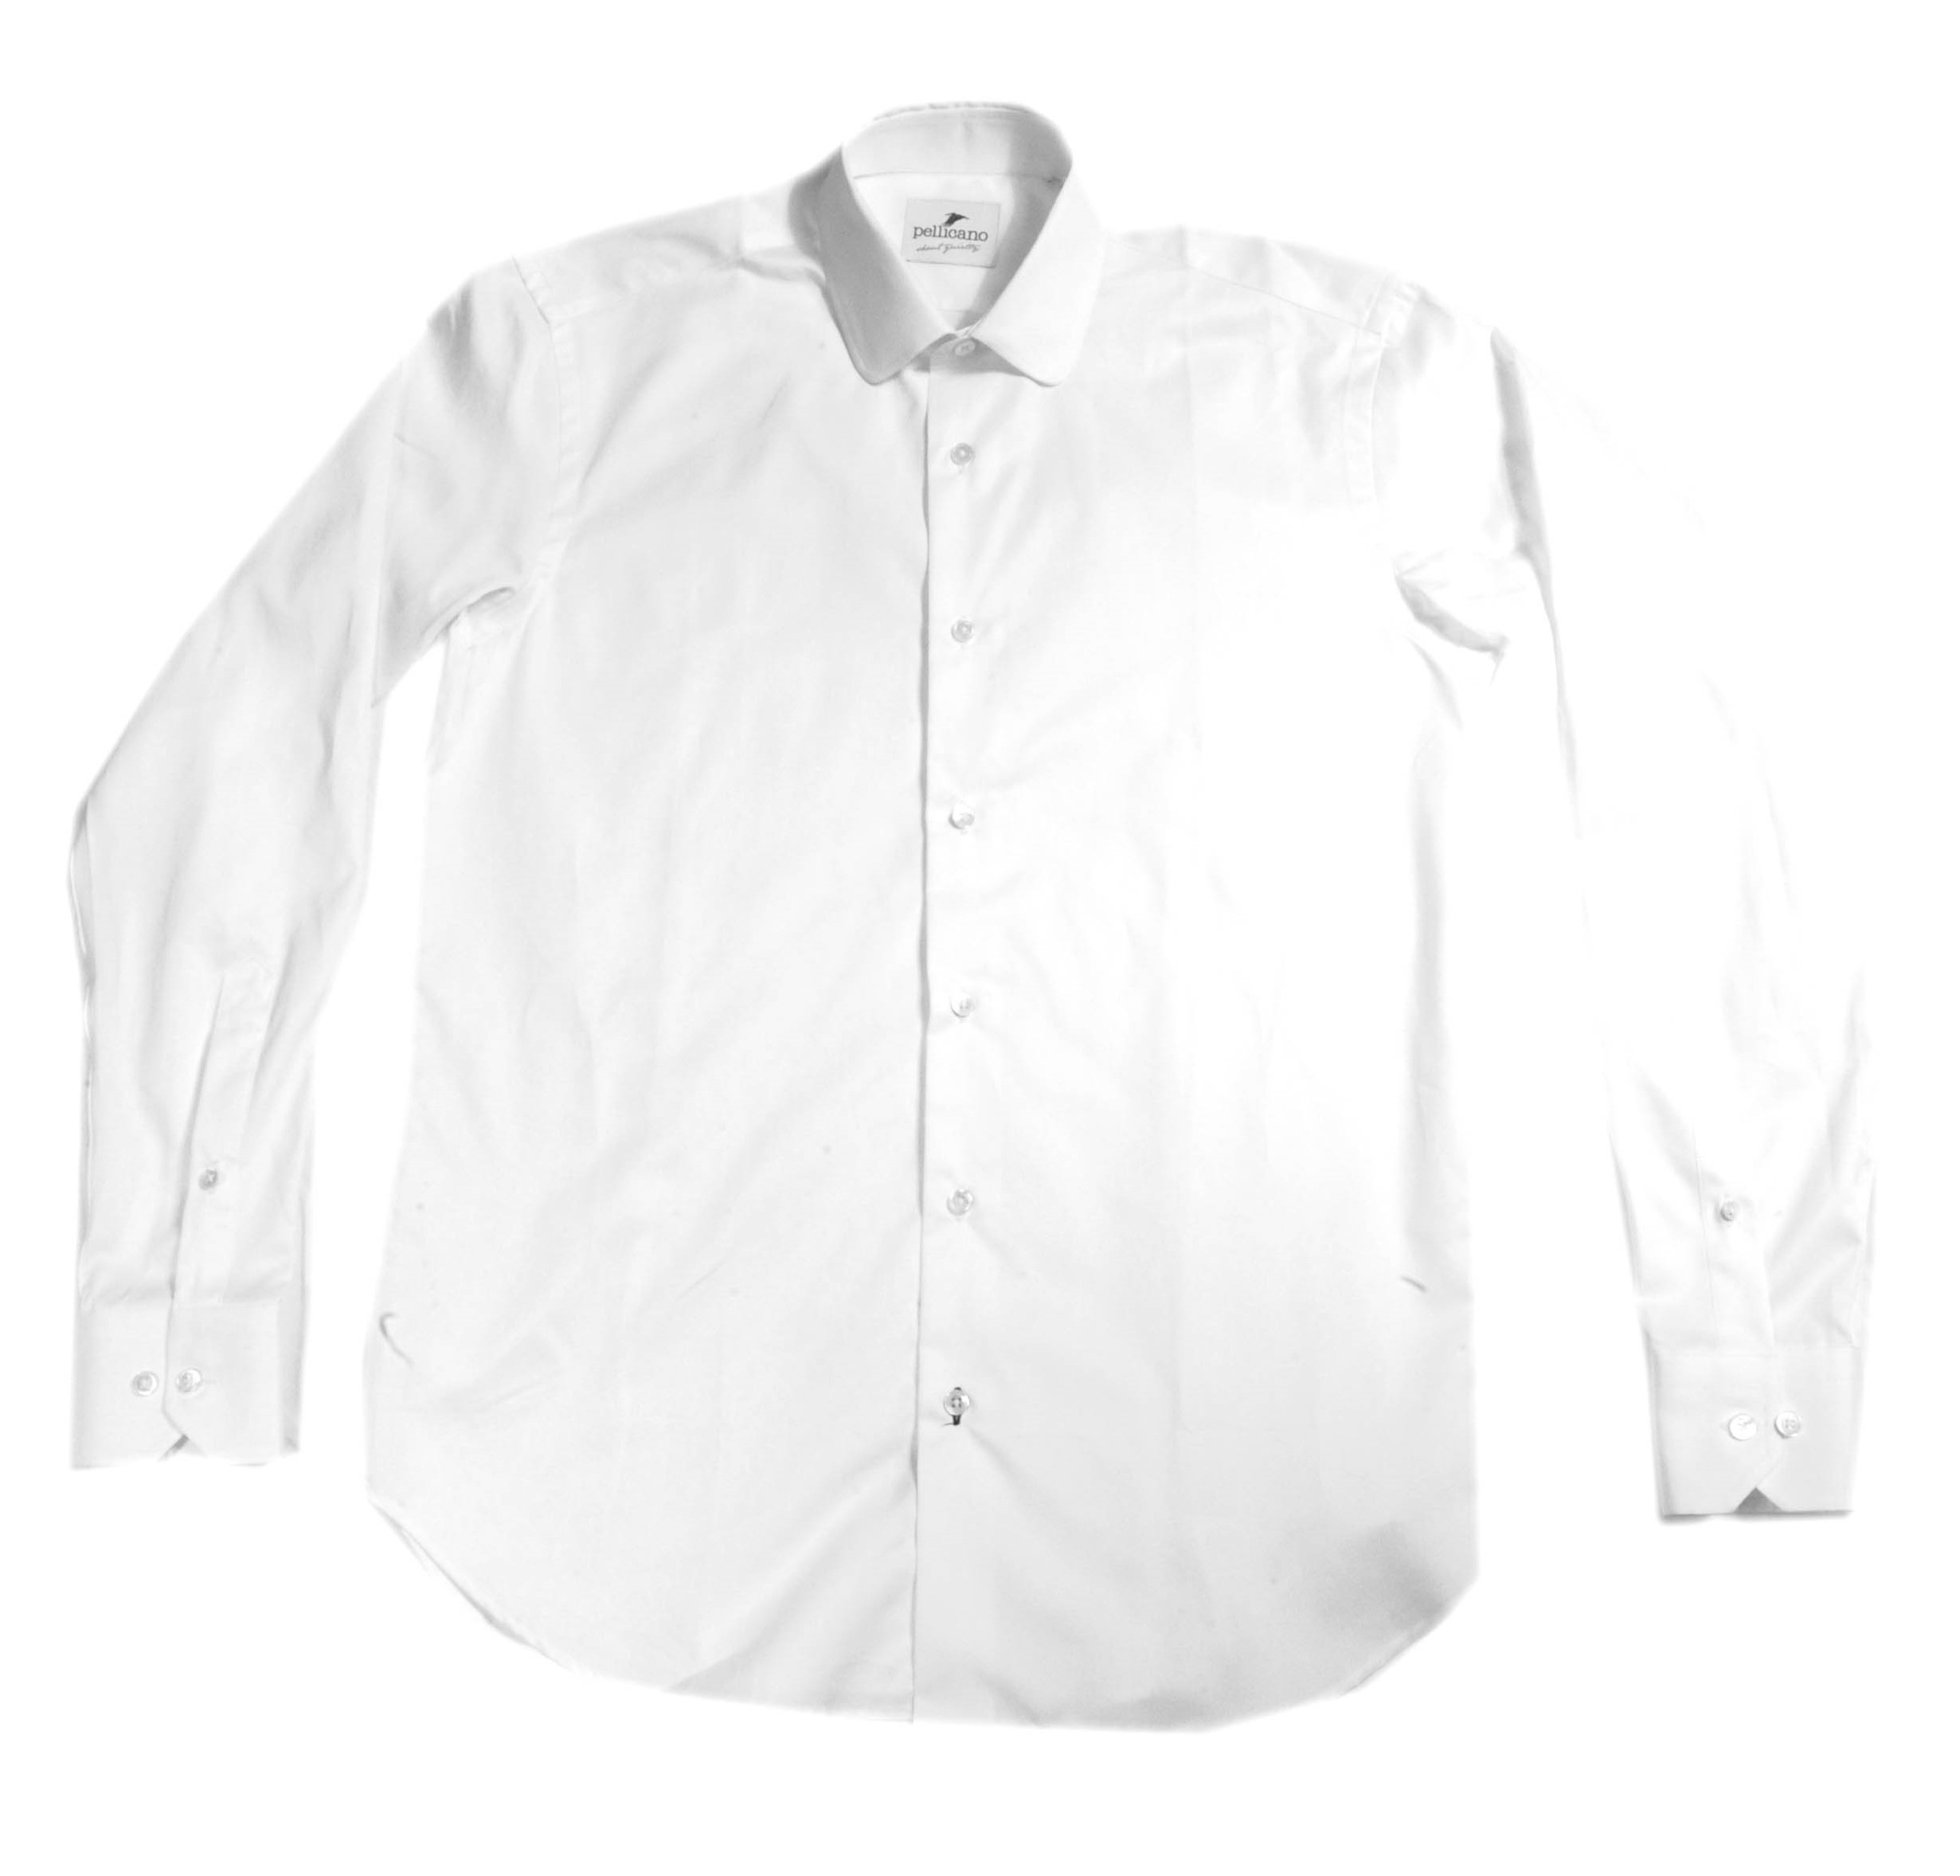 Roberto penny collar shirt in crisp white cotton in a for Crisp white cotton shirt